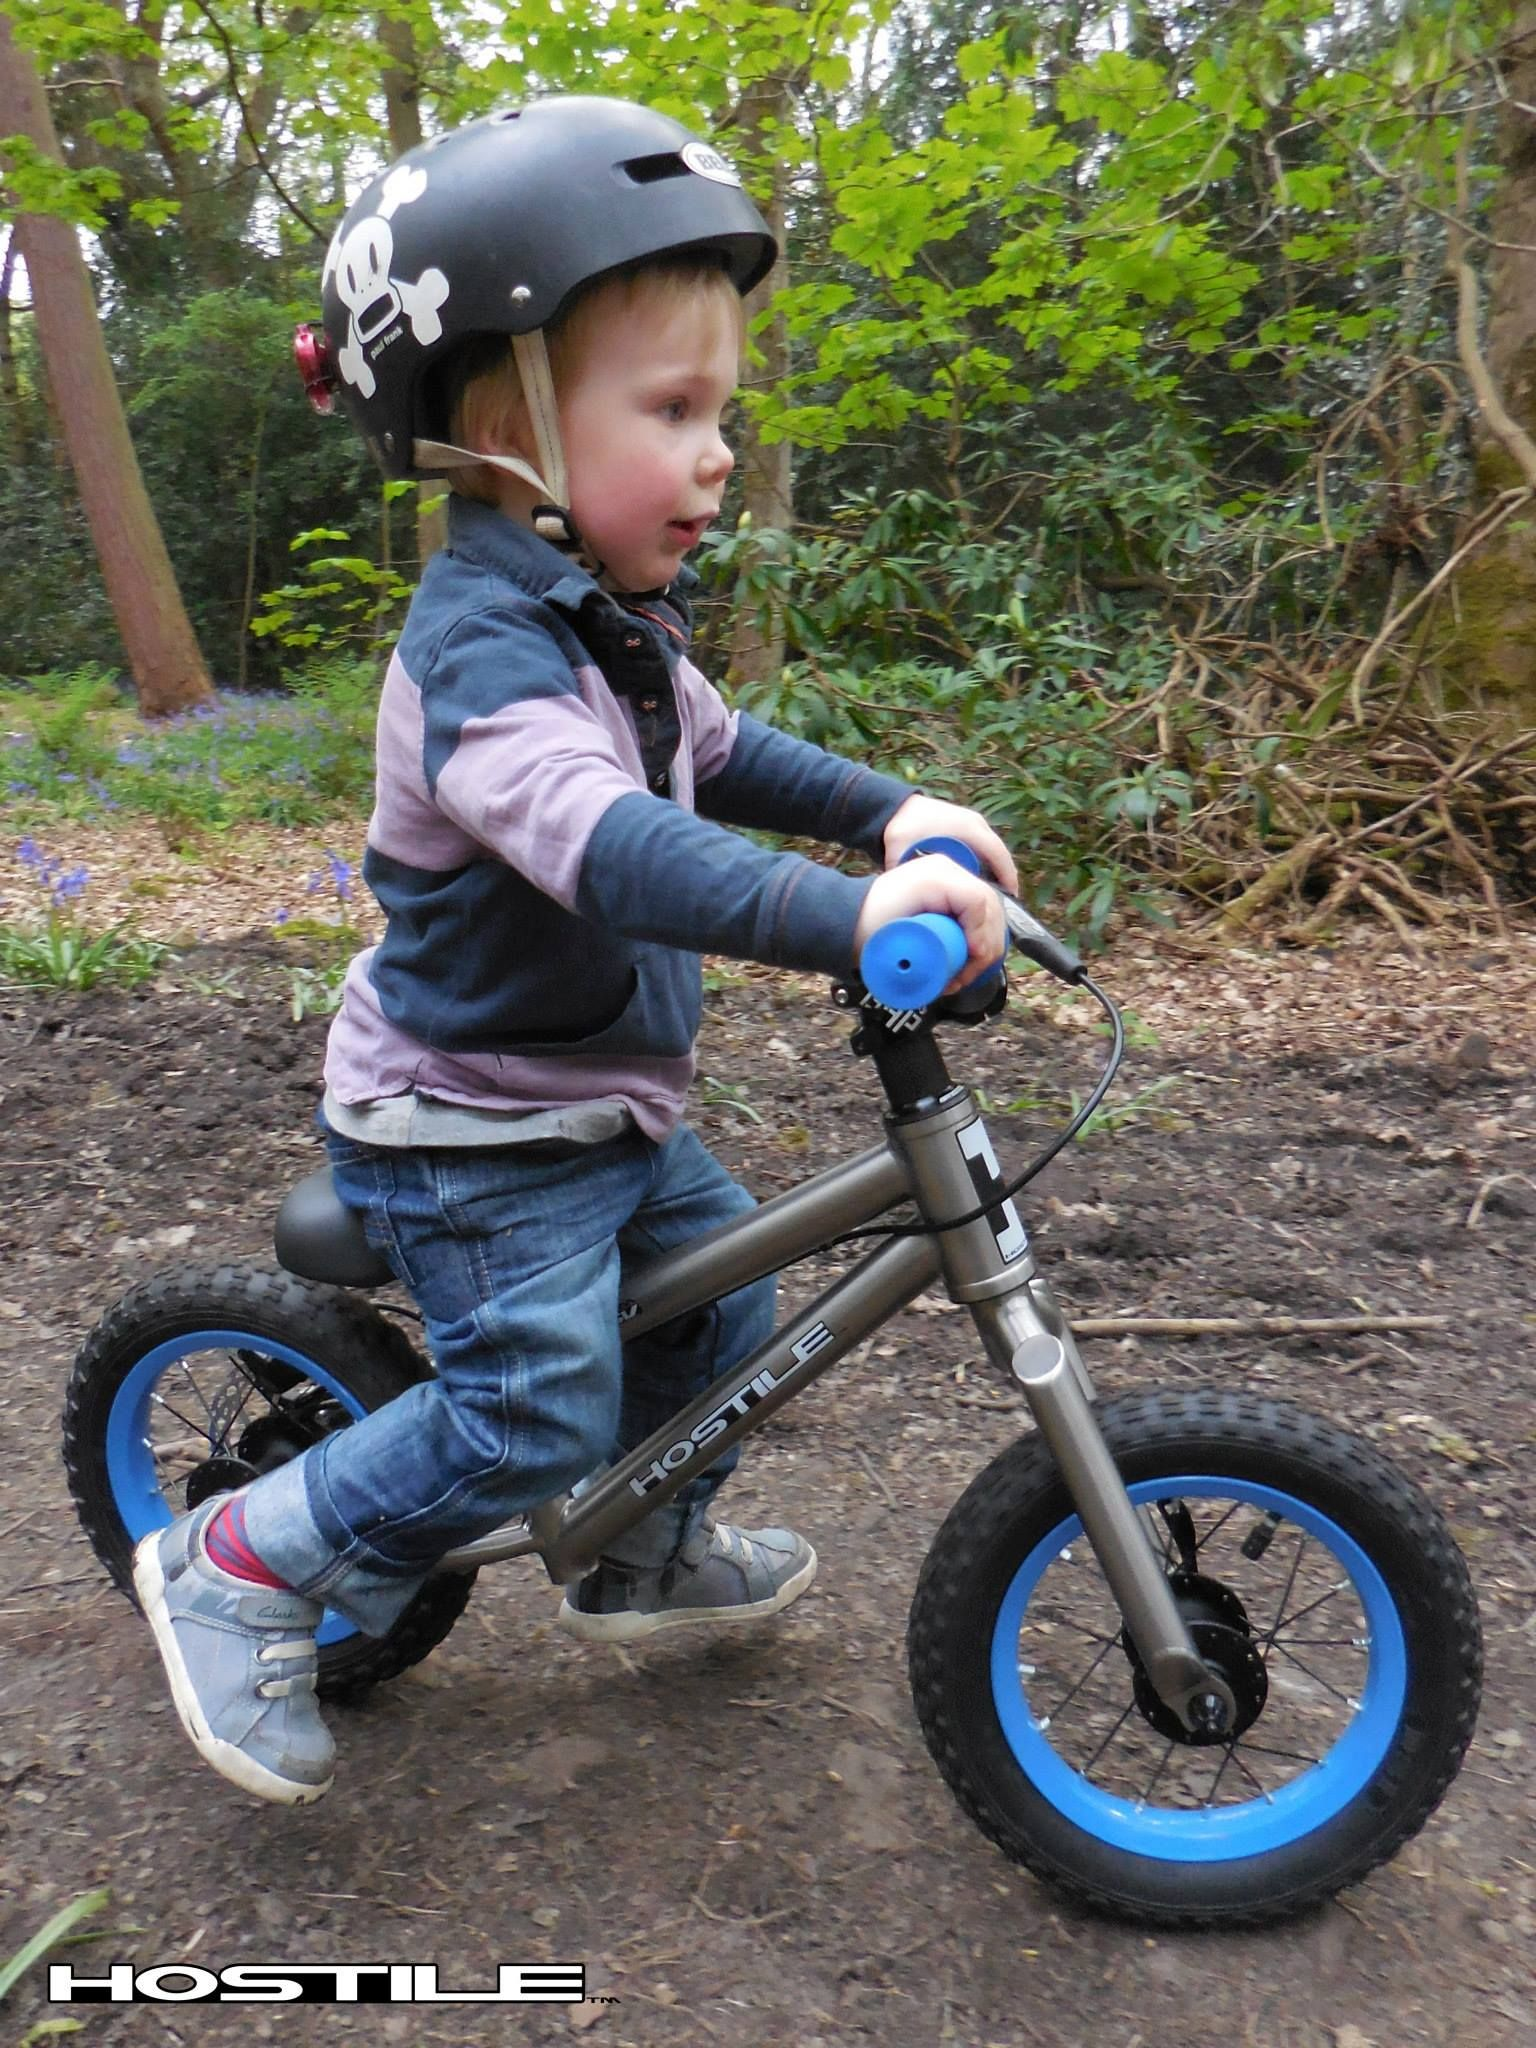 2 Year Old Toddler Testing Out The Hostile Balance Bike Hostile